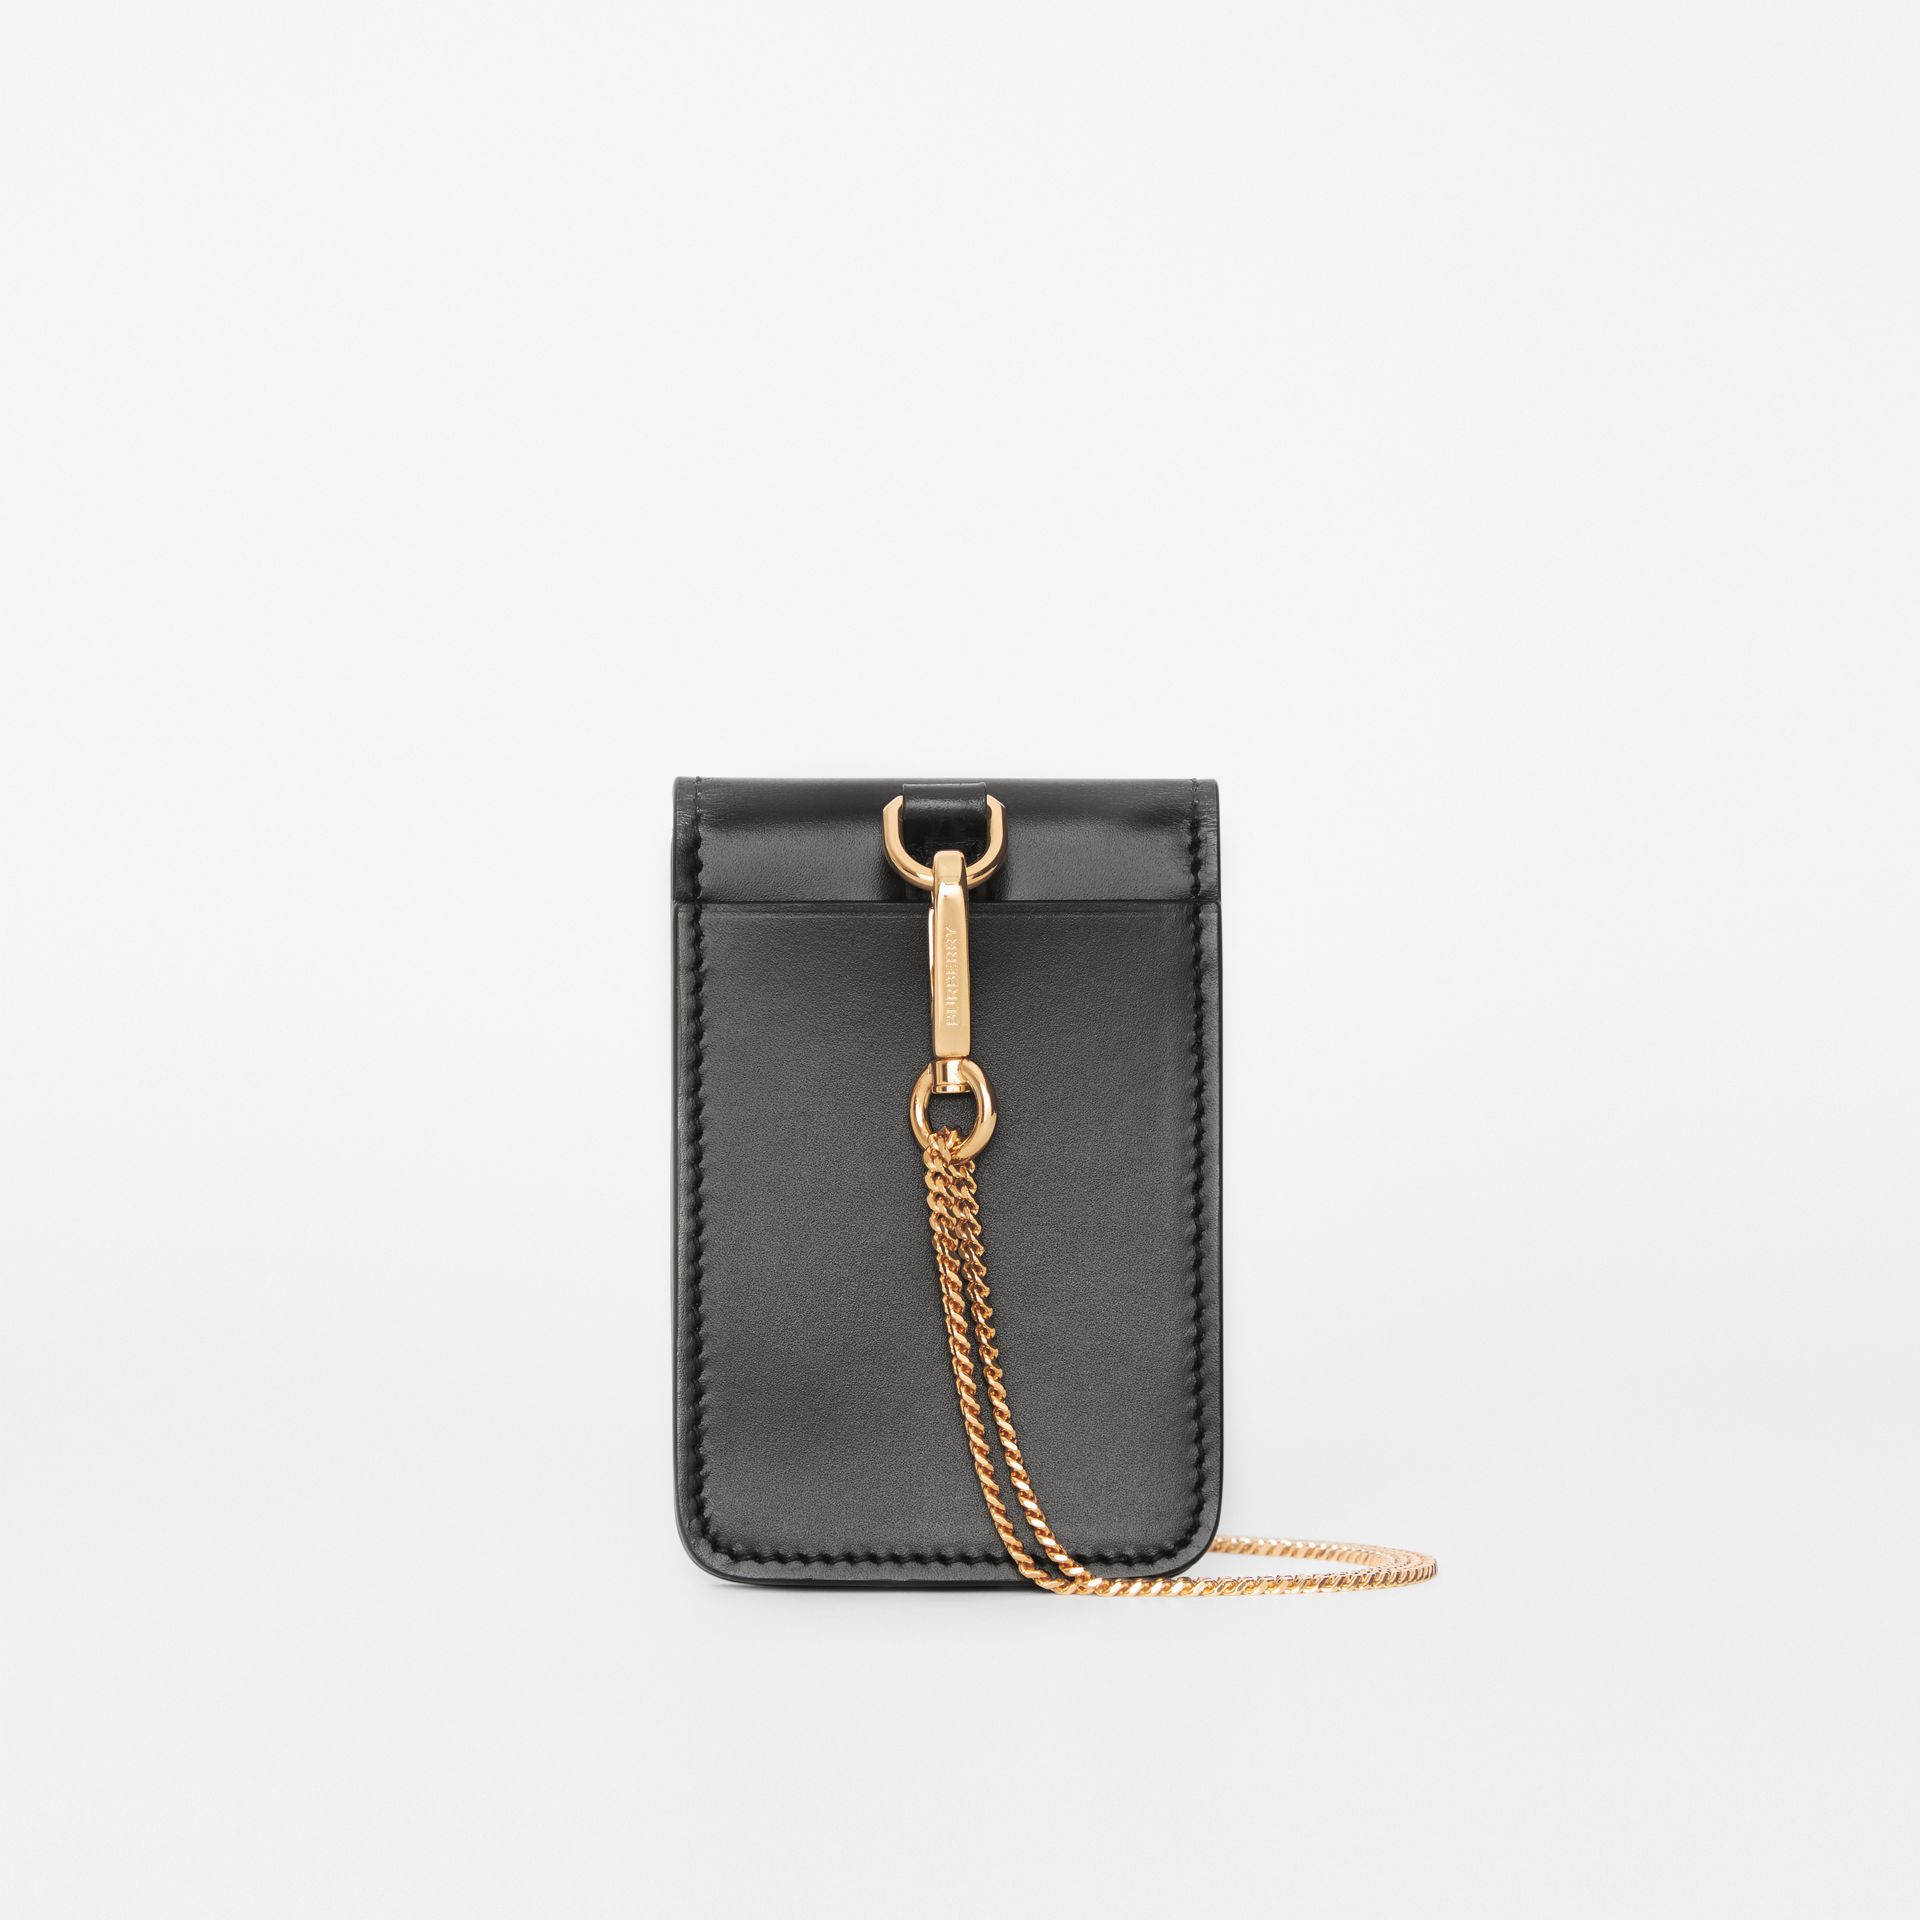 Horseferry Print Leather Card Case Lanyard in Black - Women | Burberry - gallery image 5